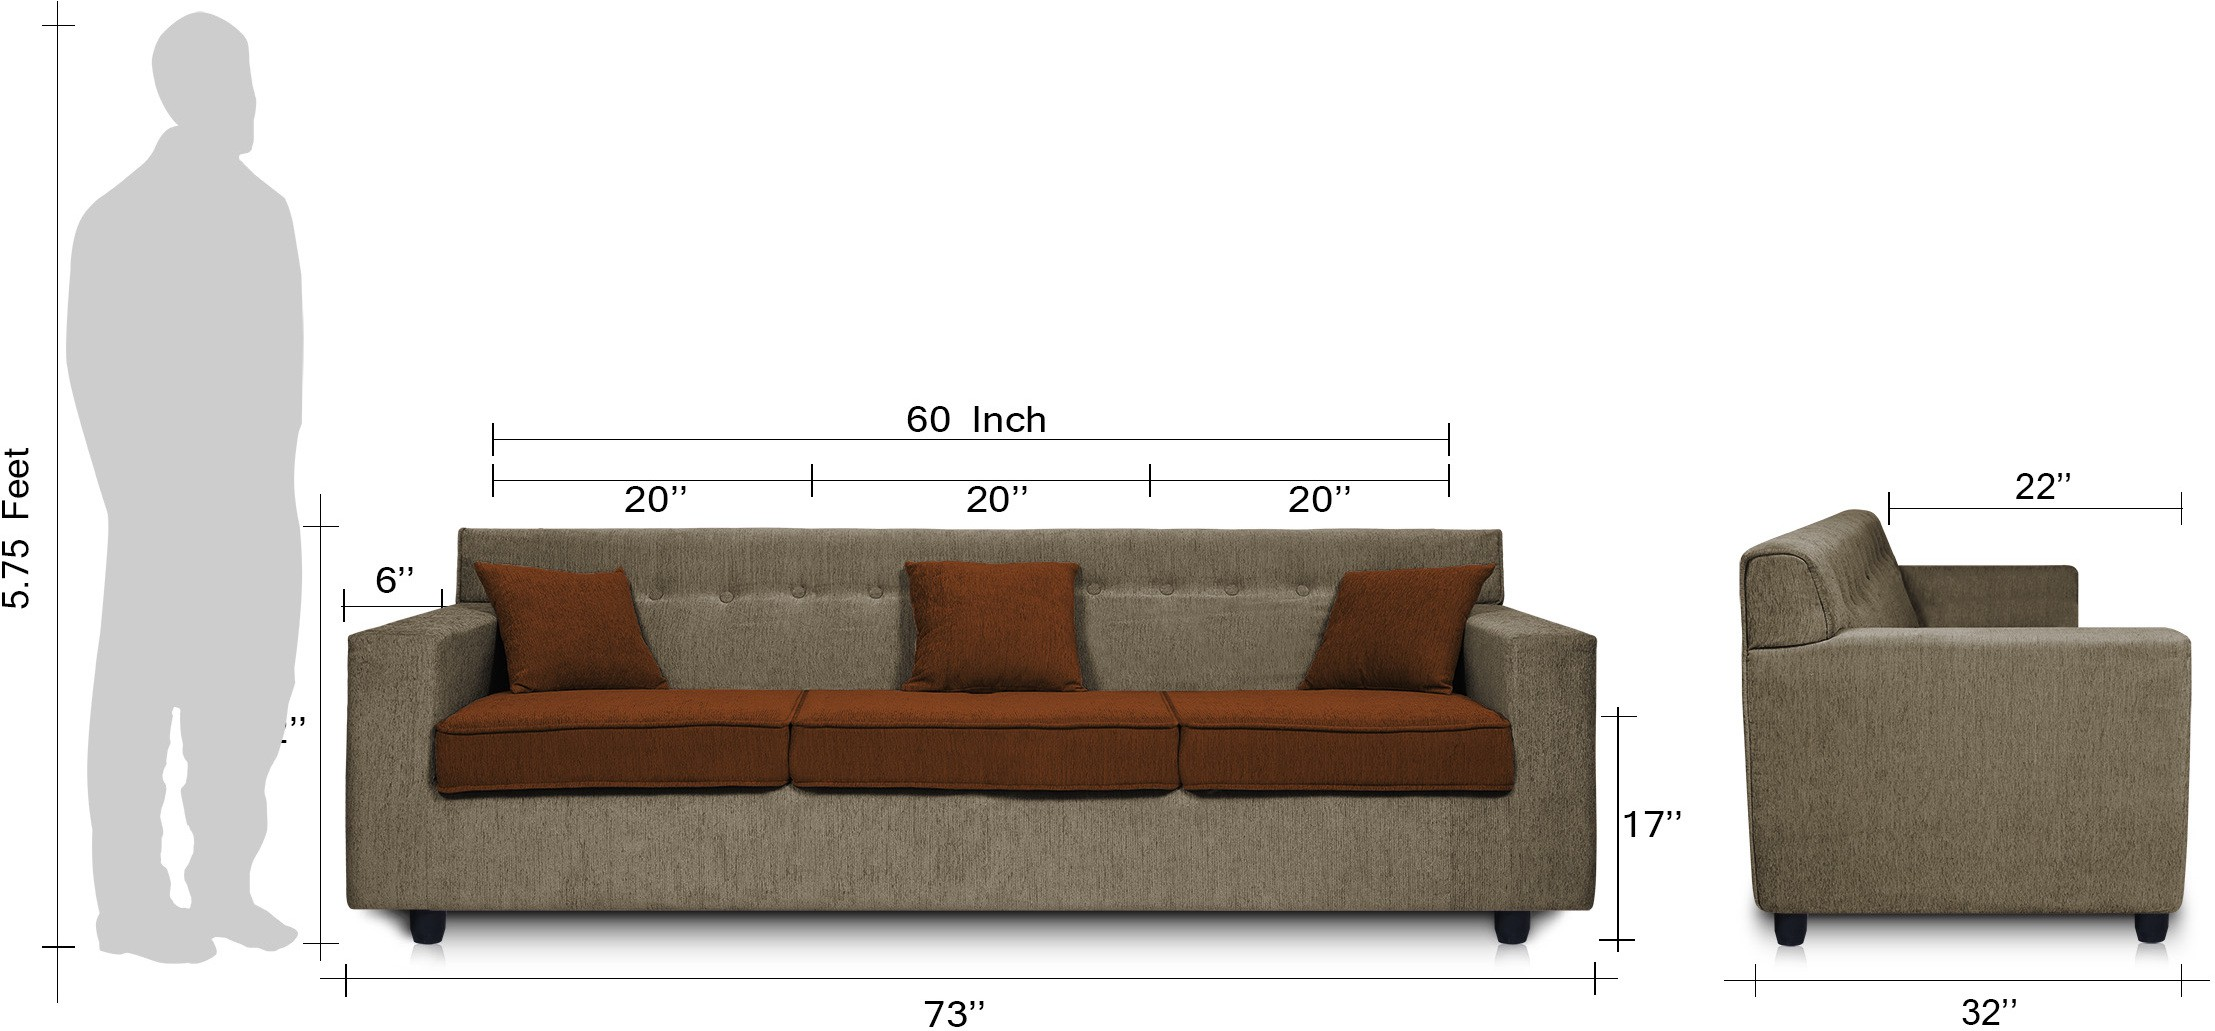 Dolphin Solitaire Solid Wood 3 Seater Sectional